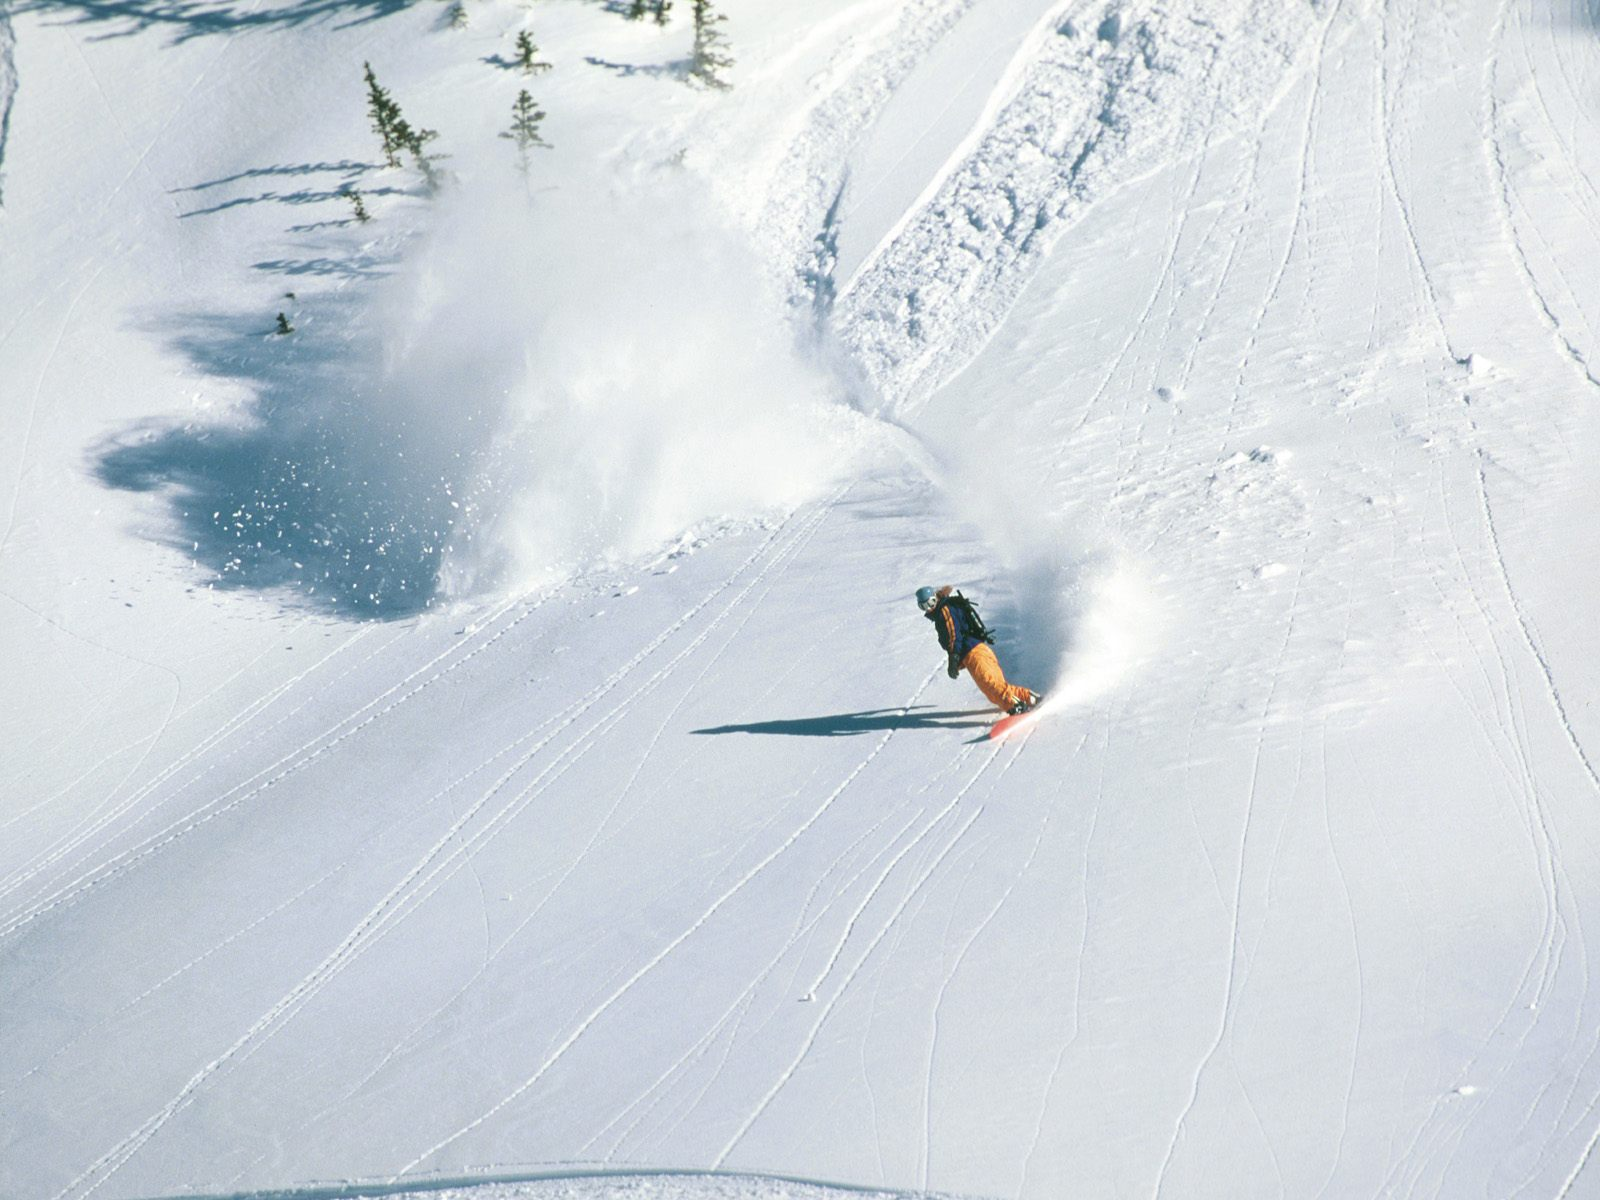 extreme snowboarding wallpapers - photo #10